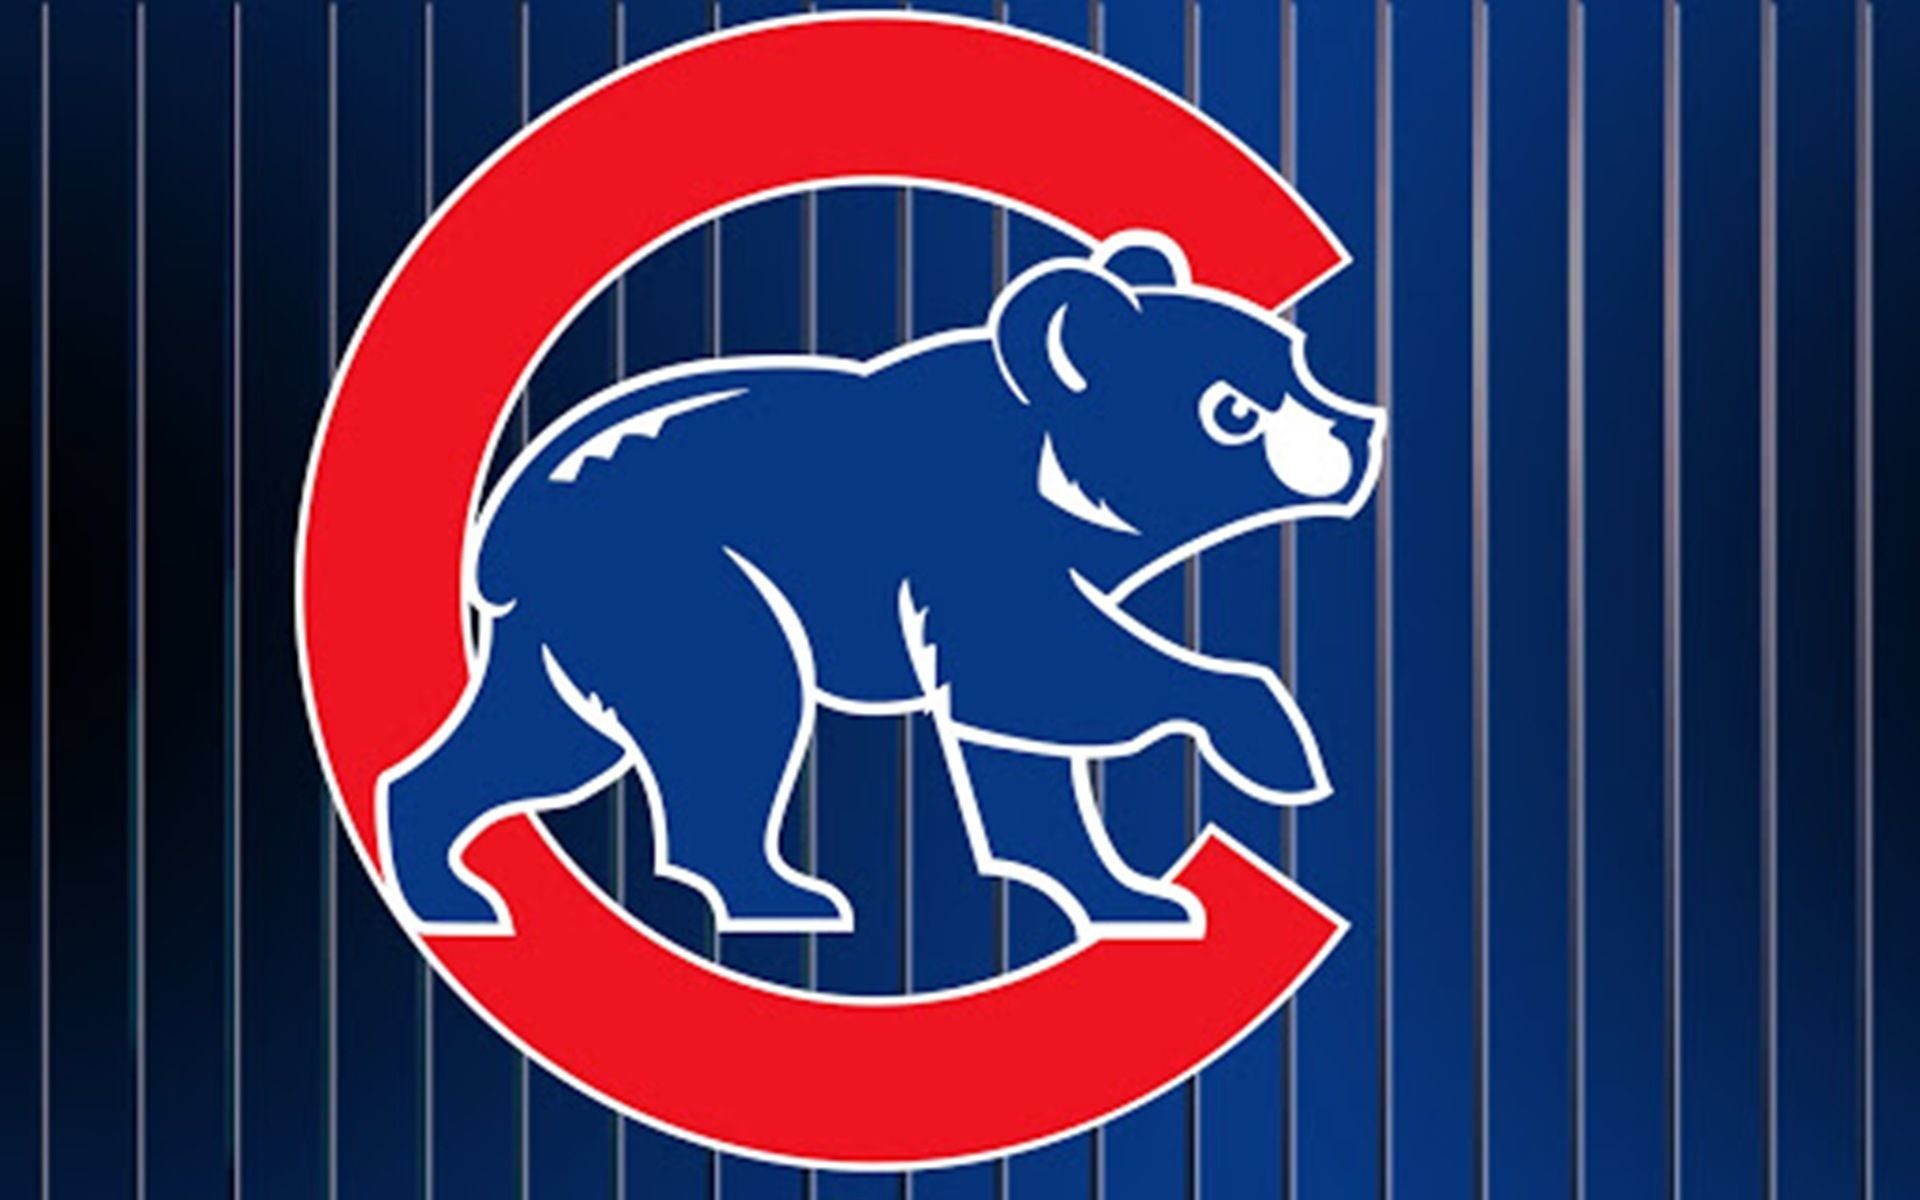 1920x1200 Chicago Cubs HD Wallpaper